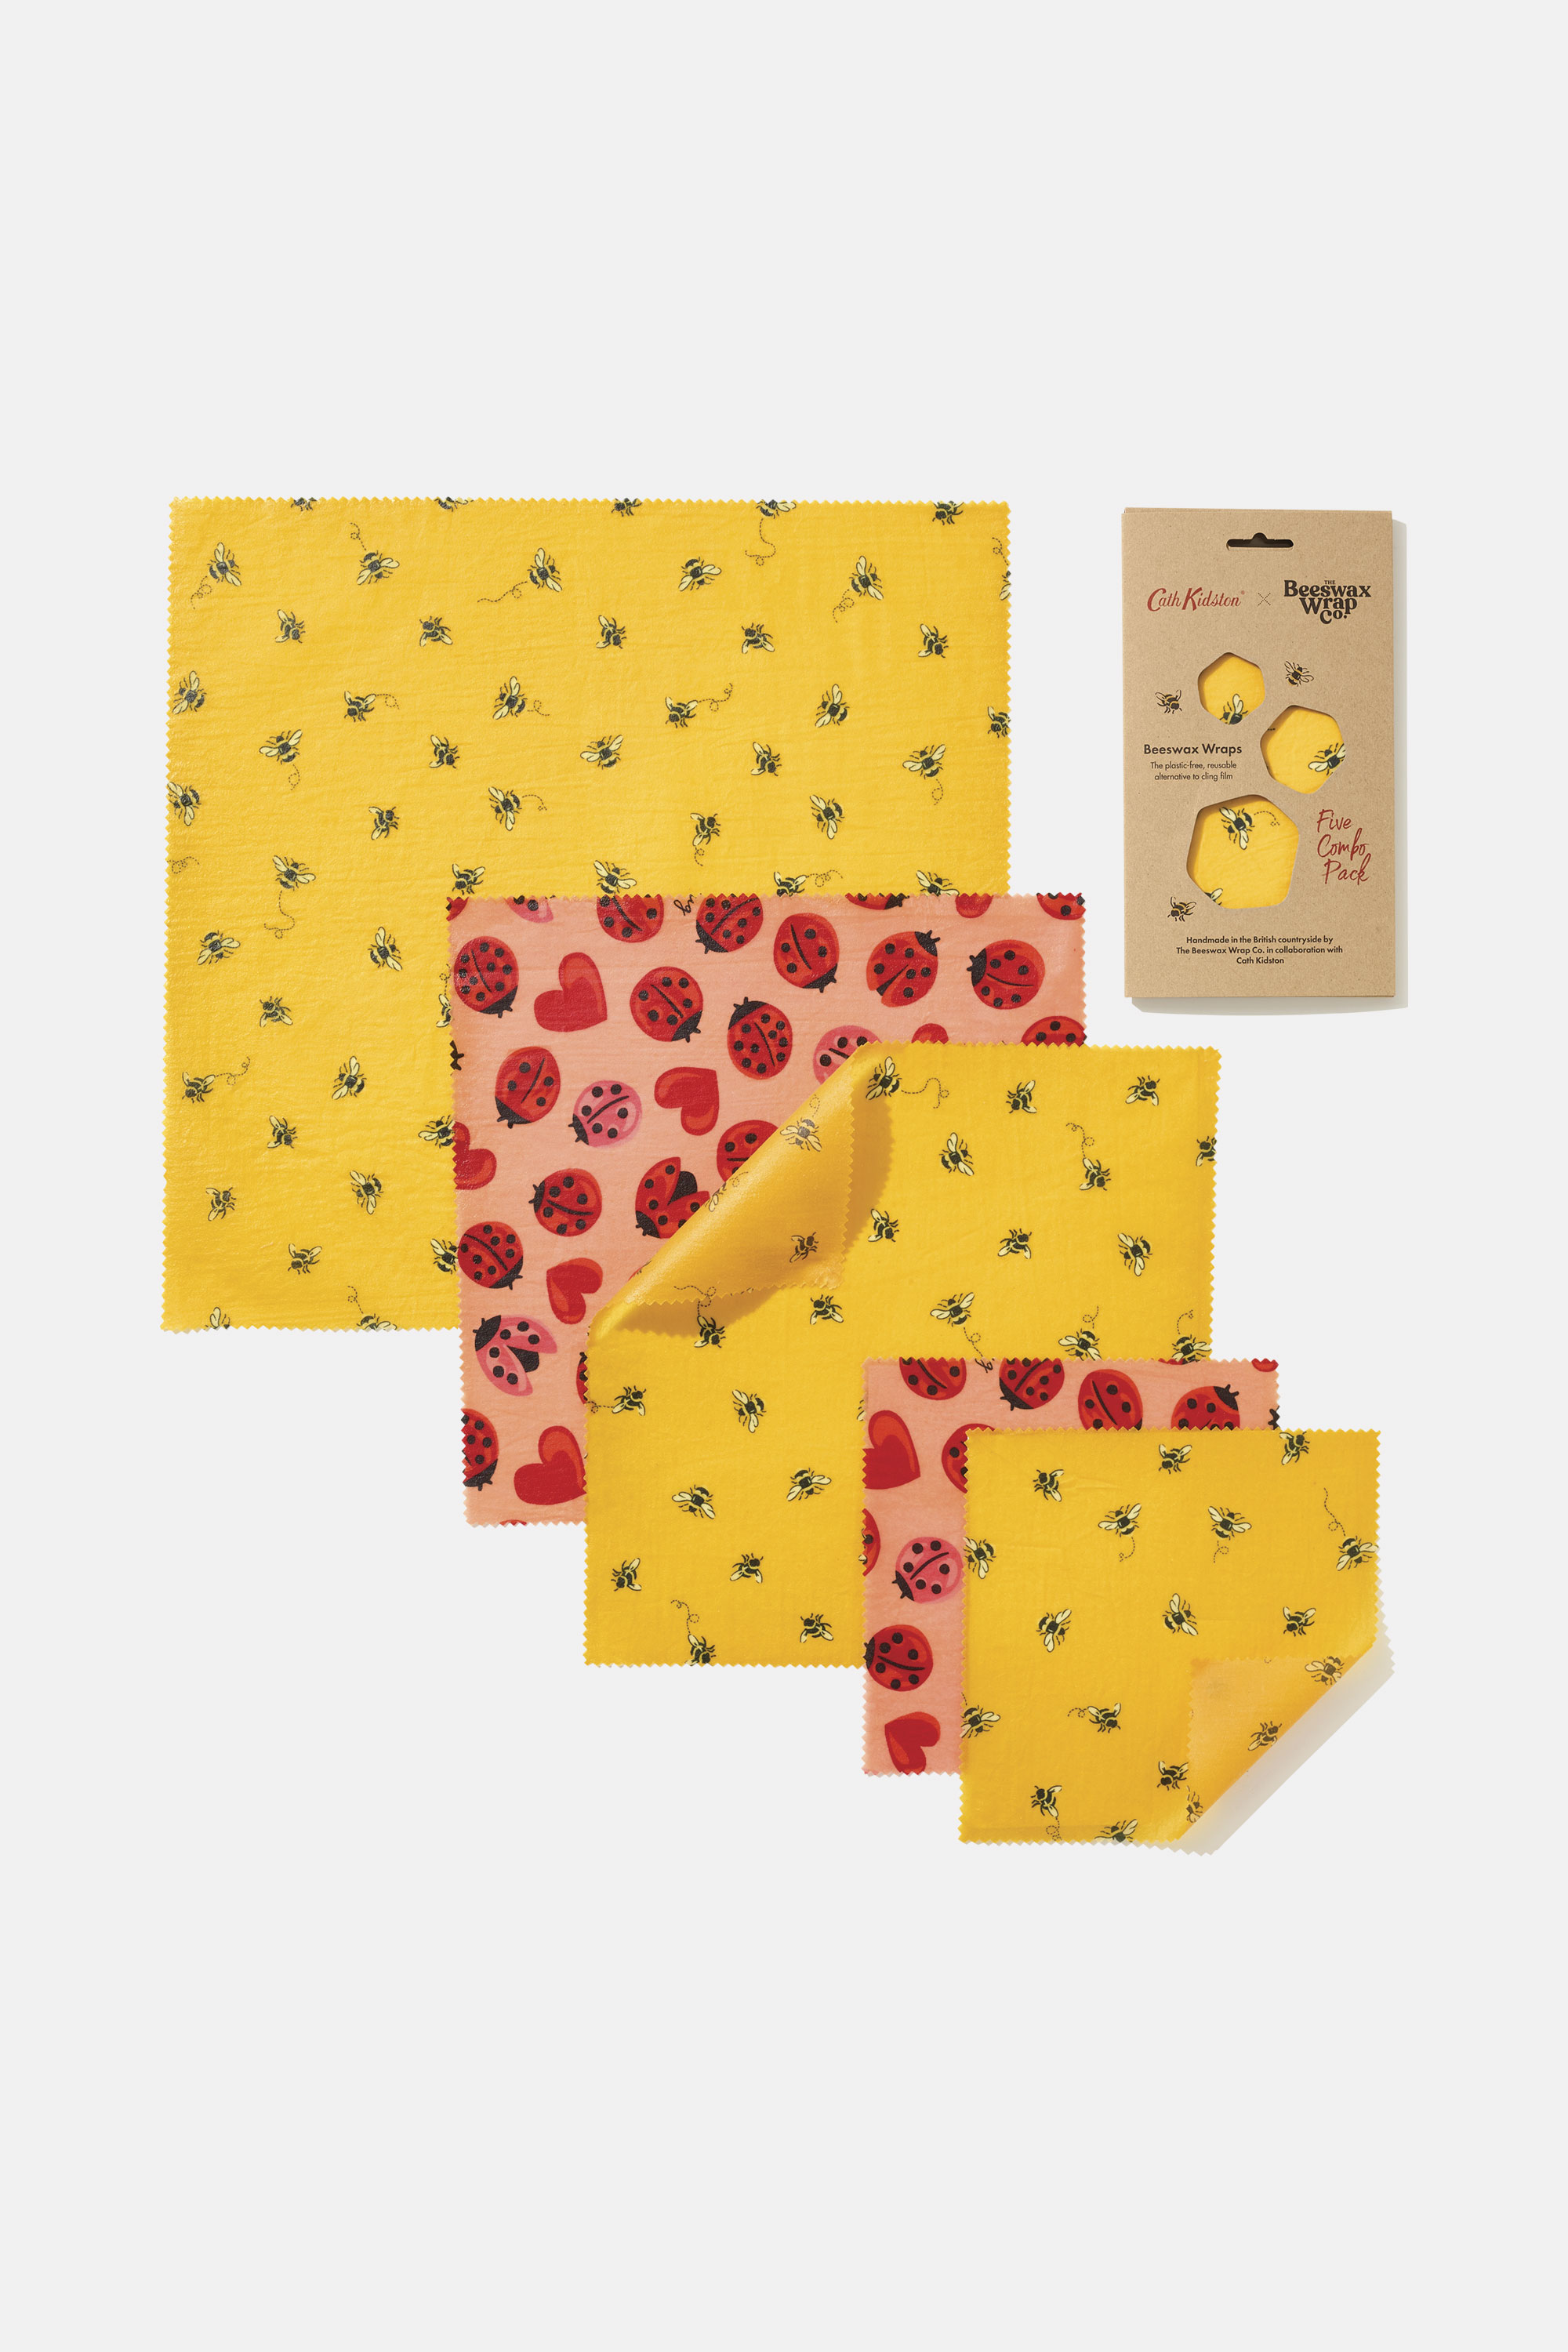 Cath Kidston The Beeswax Wrap Co. Bee 5 Combo Pack in Deep Yellow